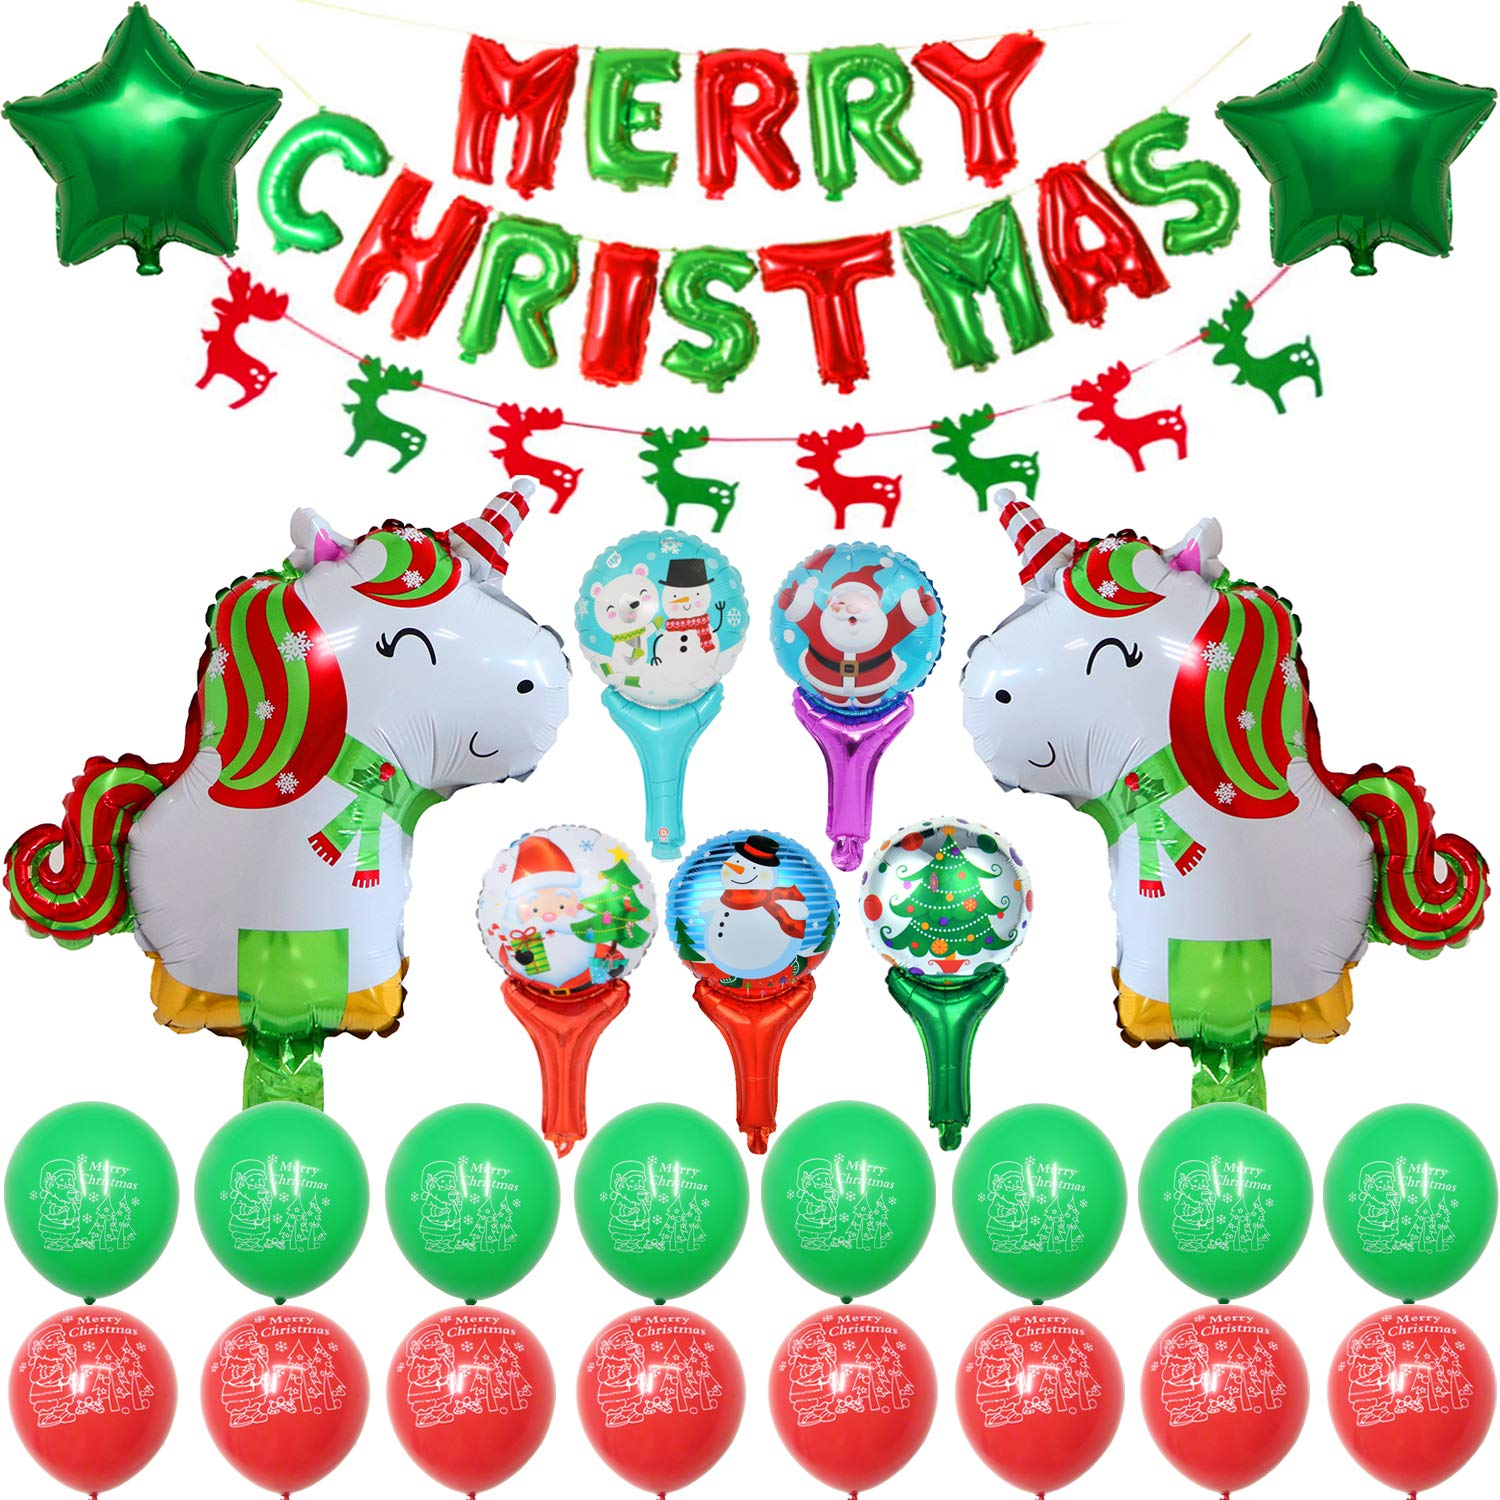 Christmas Cute Cartoon Unicorn and Handheld Foil Balloons Party Supplies, Decoration Set With Christmas Unicorn & Five-Pointed Star Foil Balloons Red And Green Latex Balloons, Full Party Set 40PCS For Christmas Party Welliboom Technology Company Limited